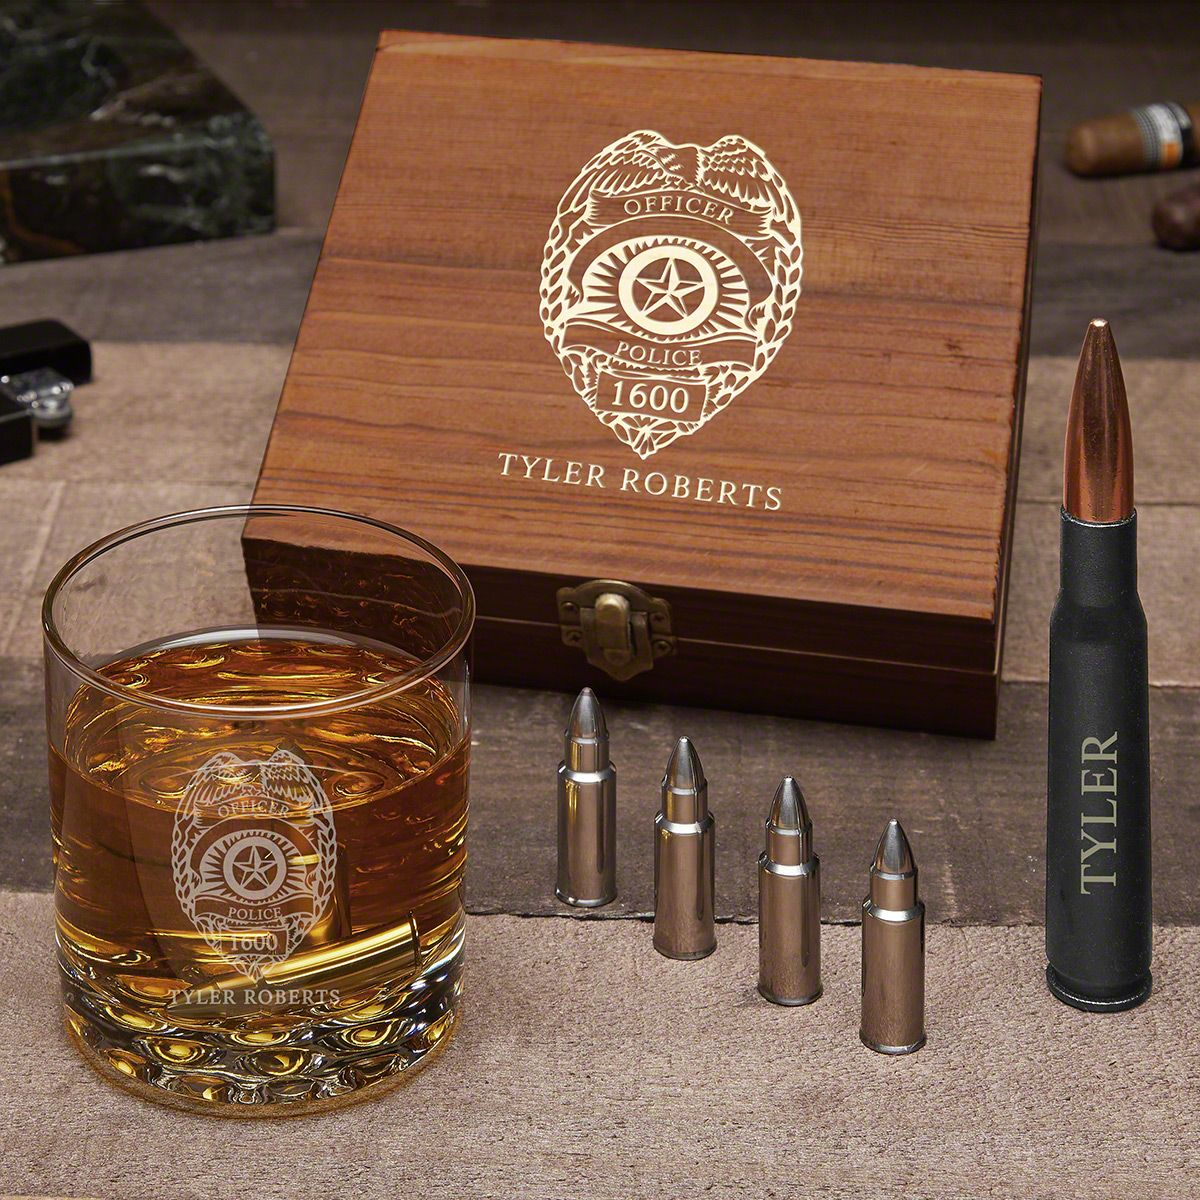 Police Badge Personalized Gun-Themed Whiskey Gift for Cops with Buckman Glass